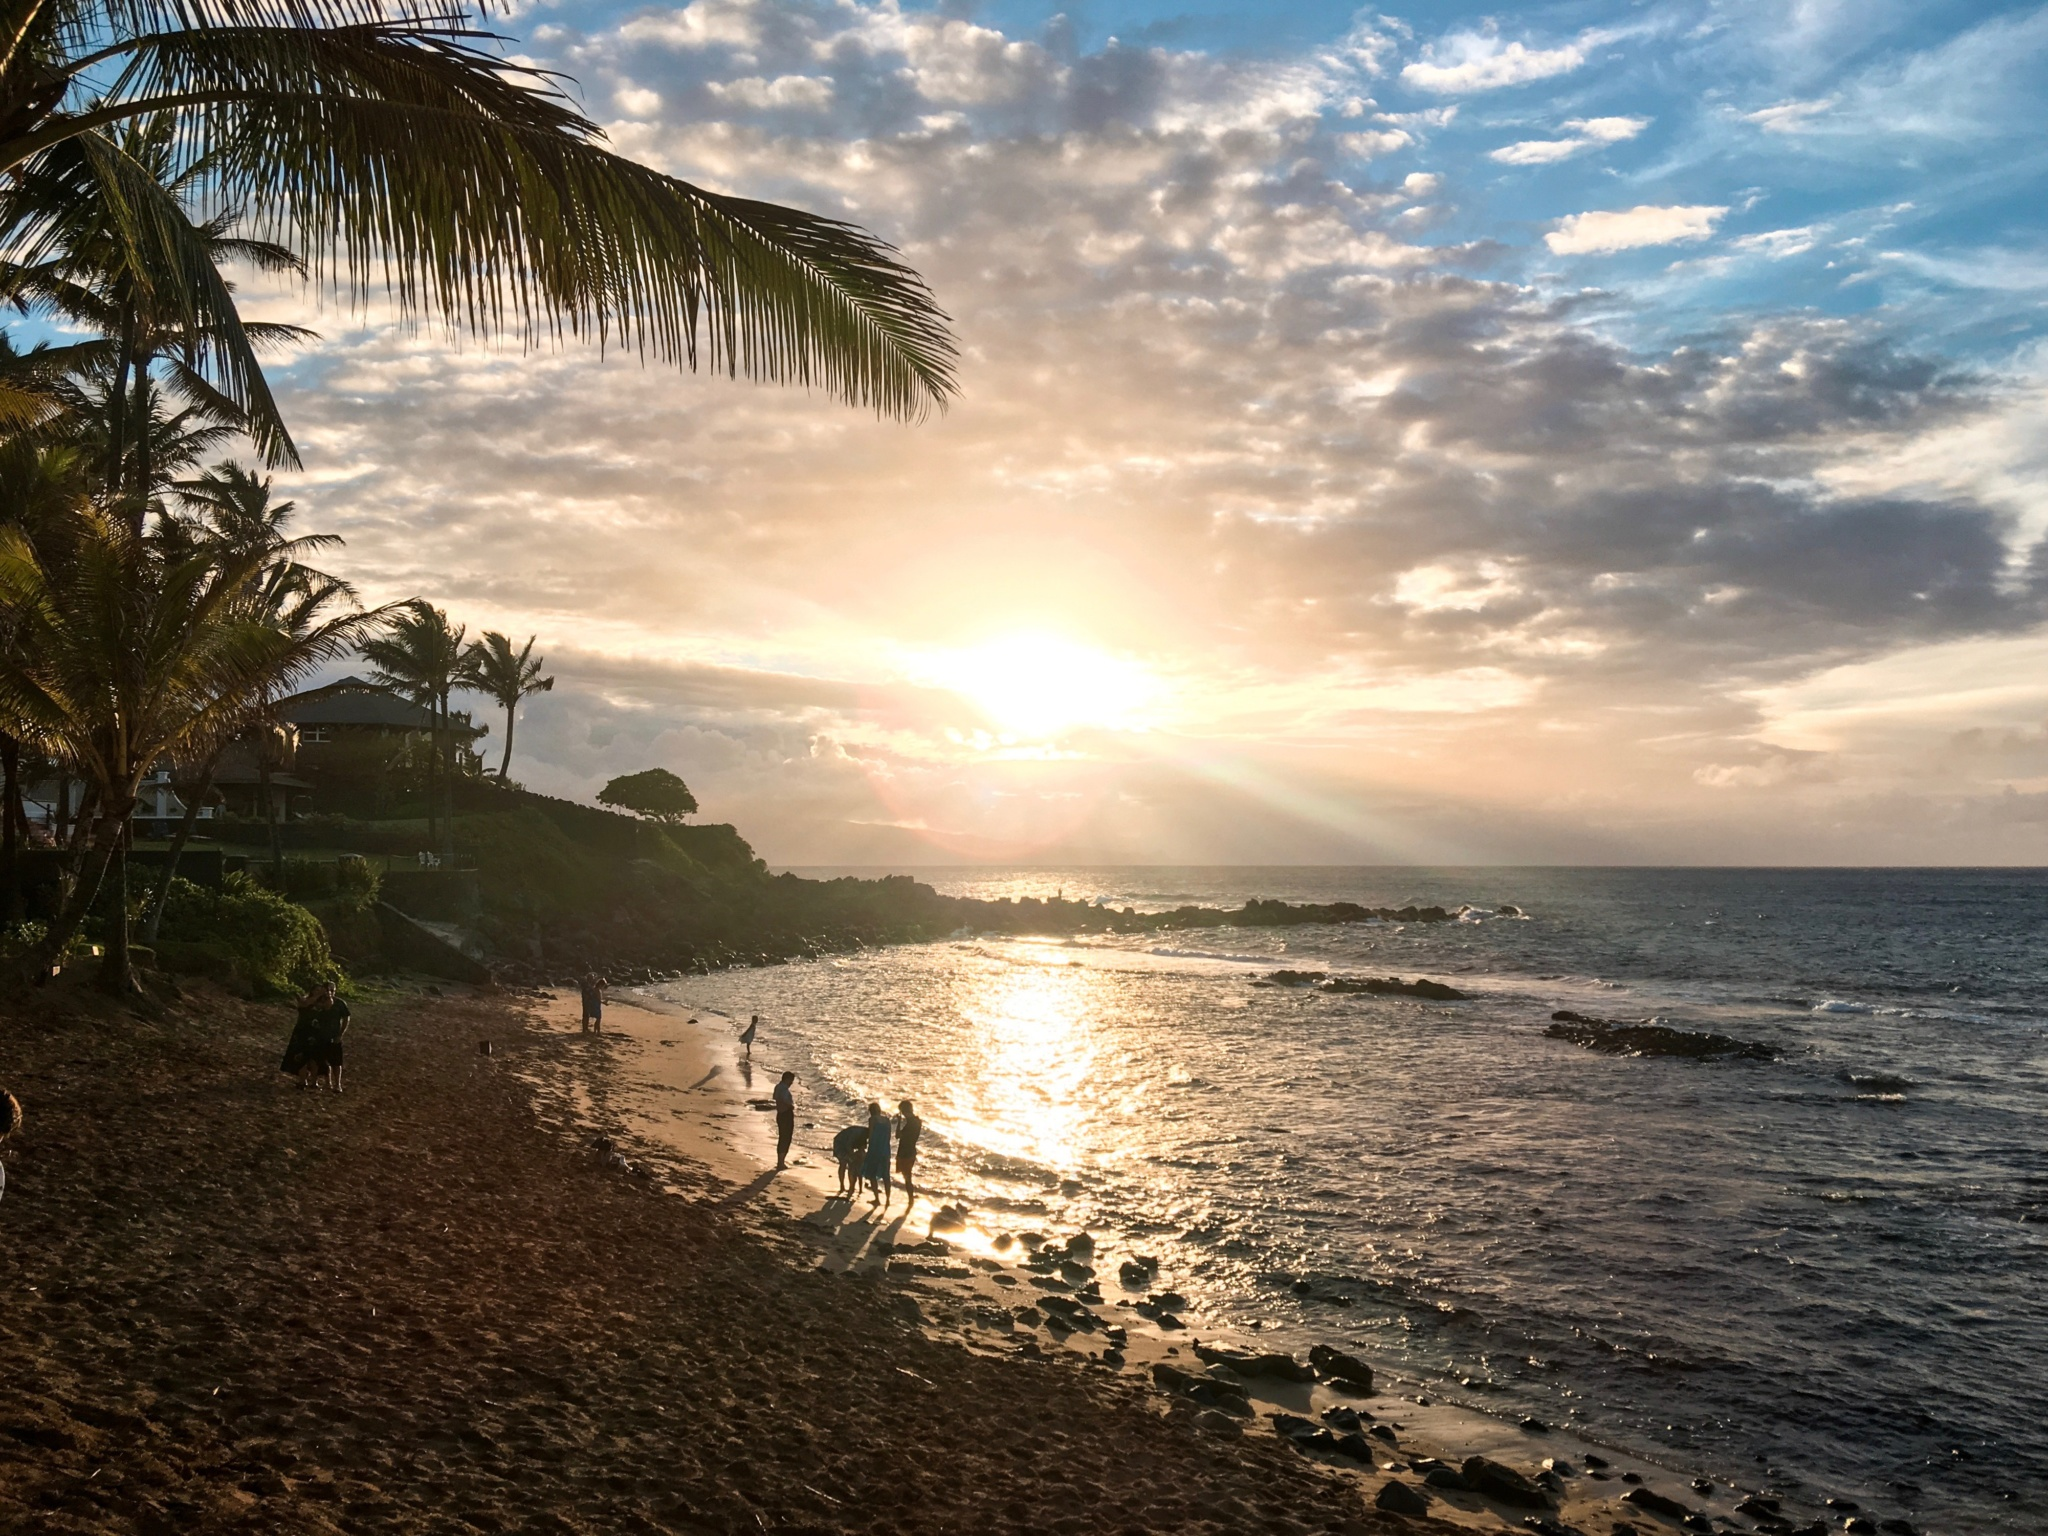 Breeze 4K Yuneec - Drone - Selfie Drone Easy to Pilot & Carry Pack - Palm Trees - Hawaii Maui Wailea Pā'ia - Summer - Beach - Ocean - Sunset - Mama's Fish House - Paia - Golden Hour - Marble - Dreamy - Killer Travel - Killer Look Travels - TheKillerLook.com - The Killer Look